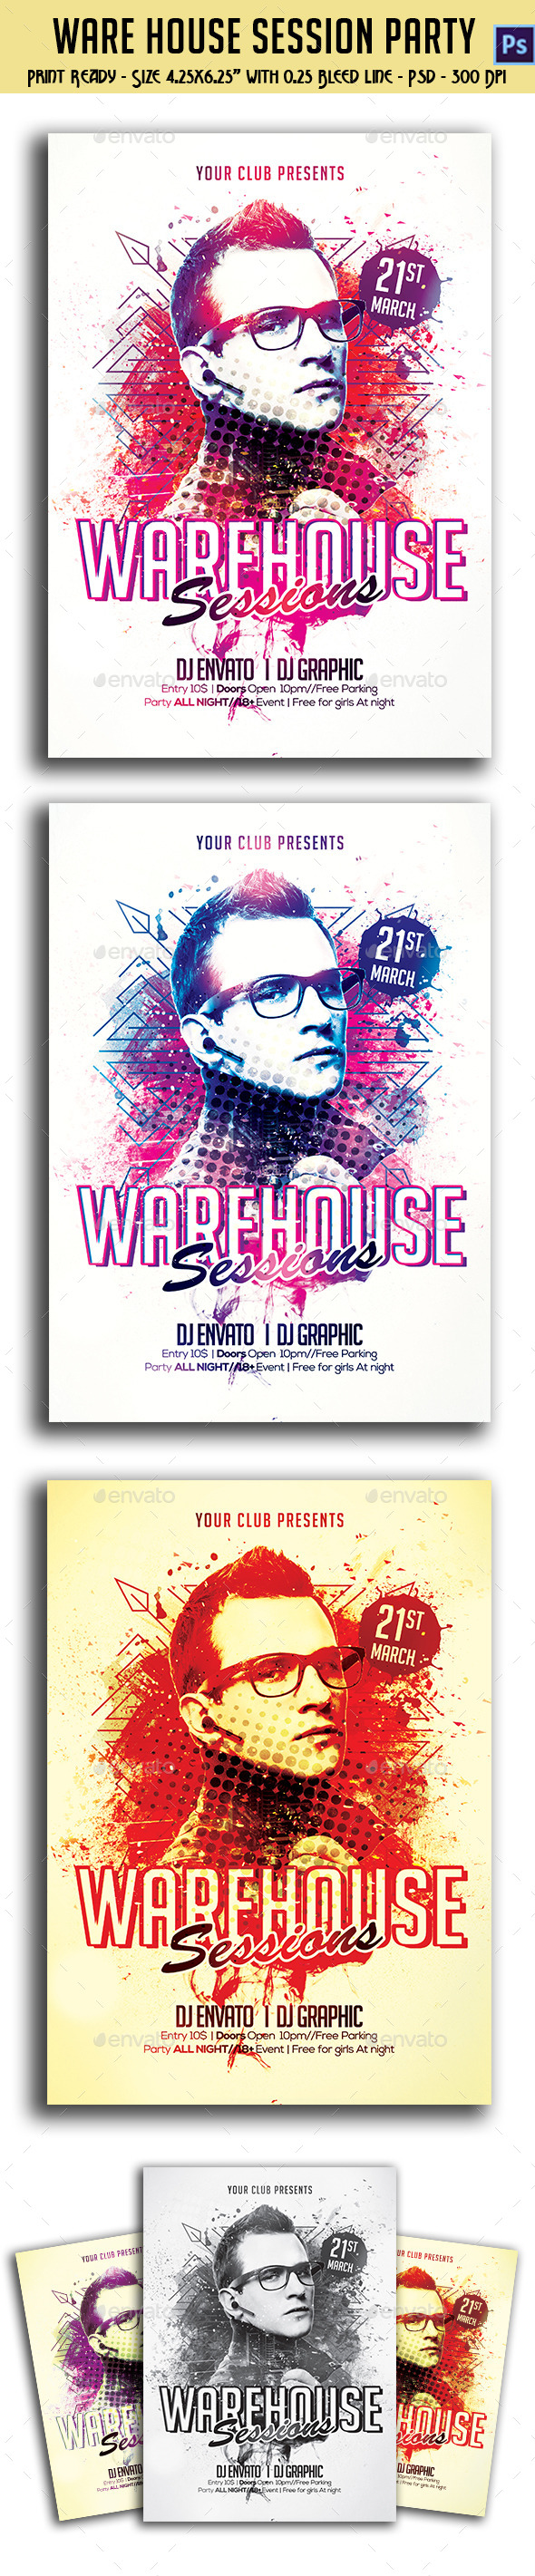 GraphicRiver Ware House Session Party Flyer 10769248